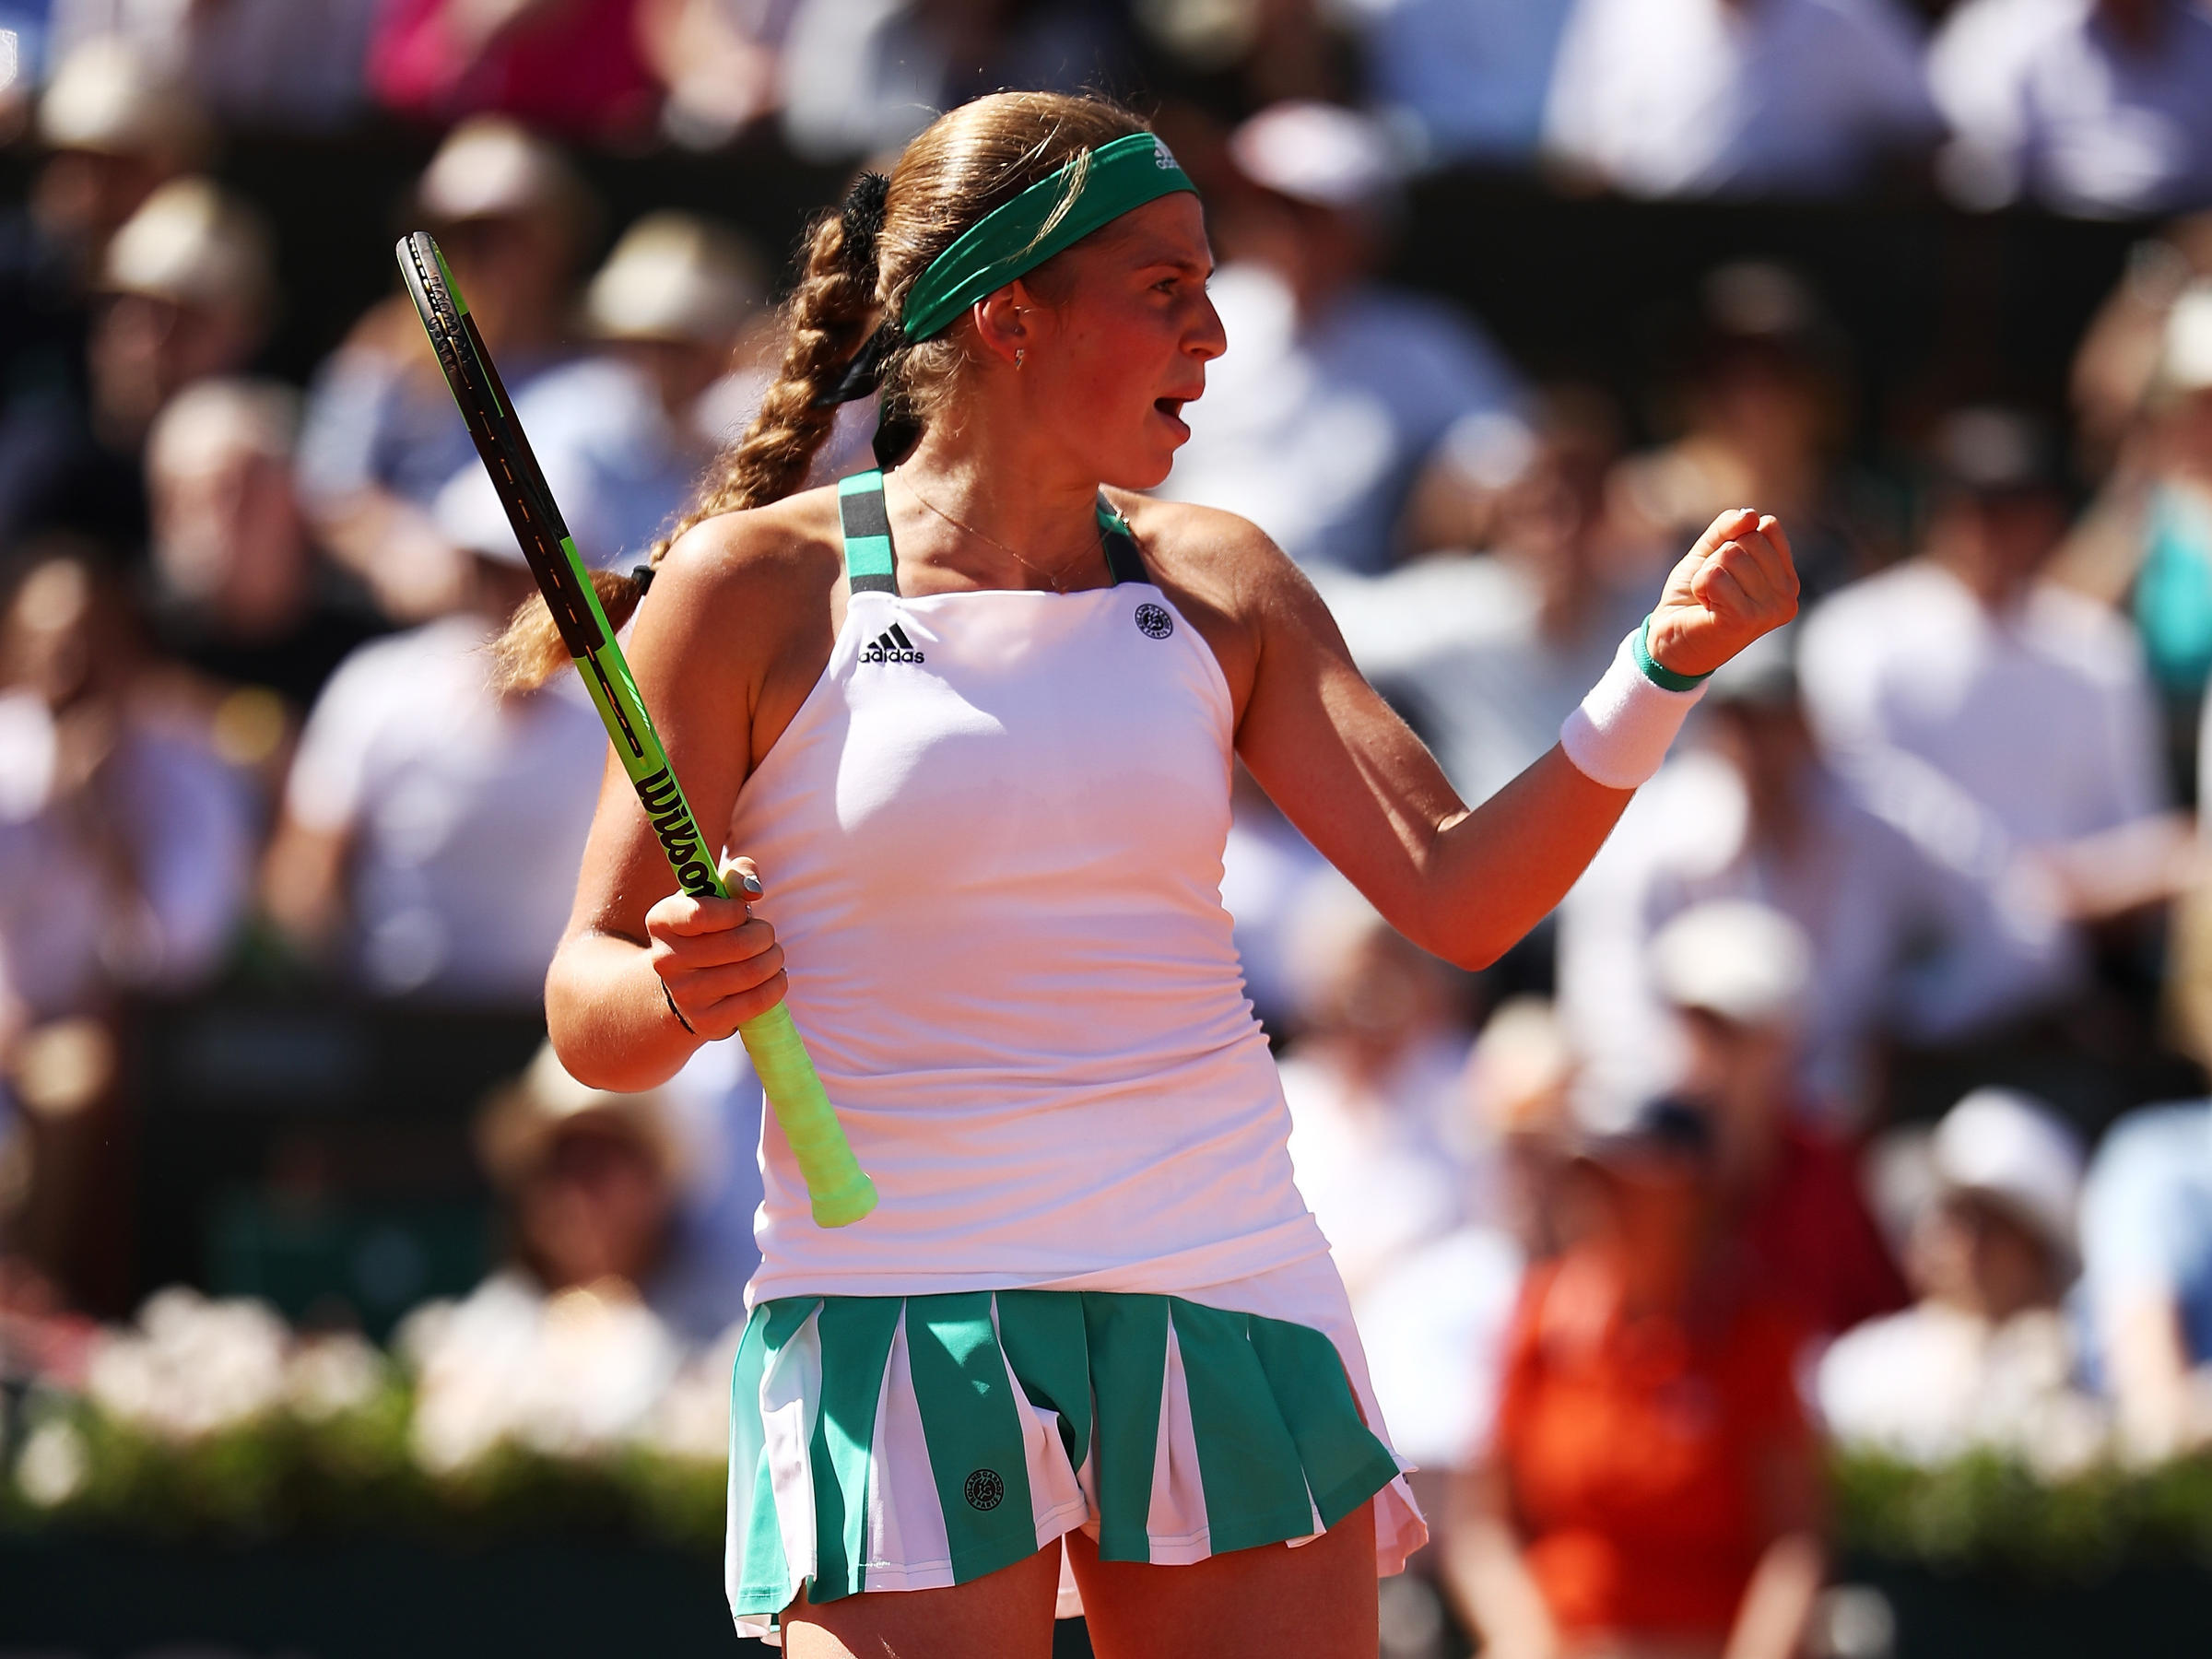 French Open 2017: Champion Jelena Ostapenko believes anything is possible